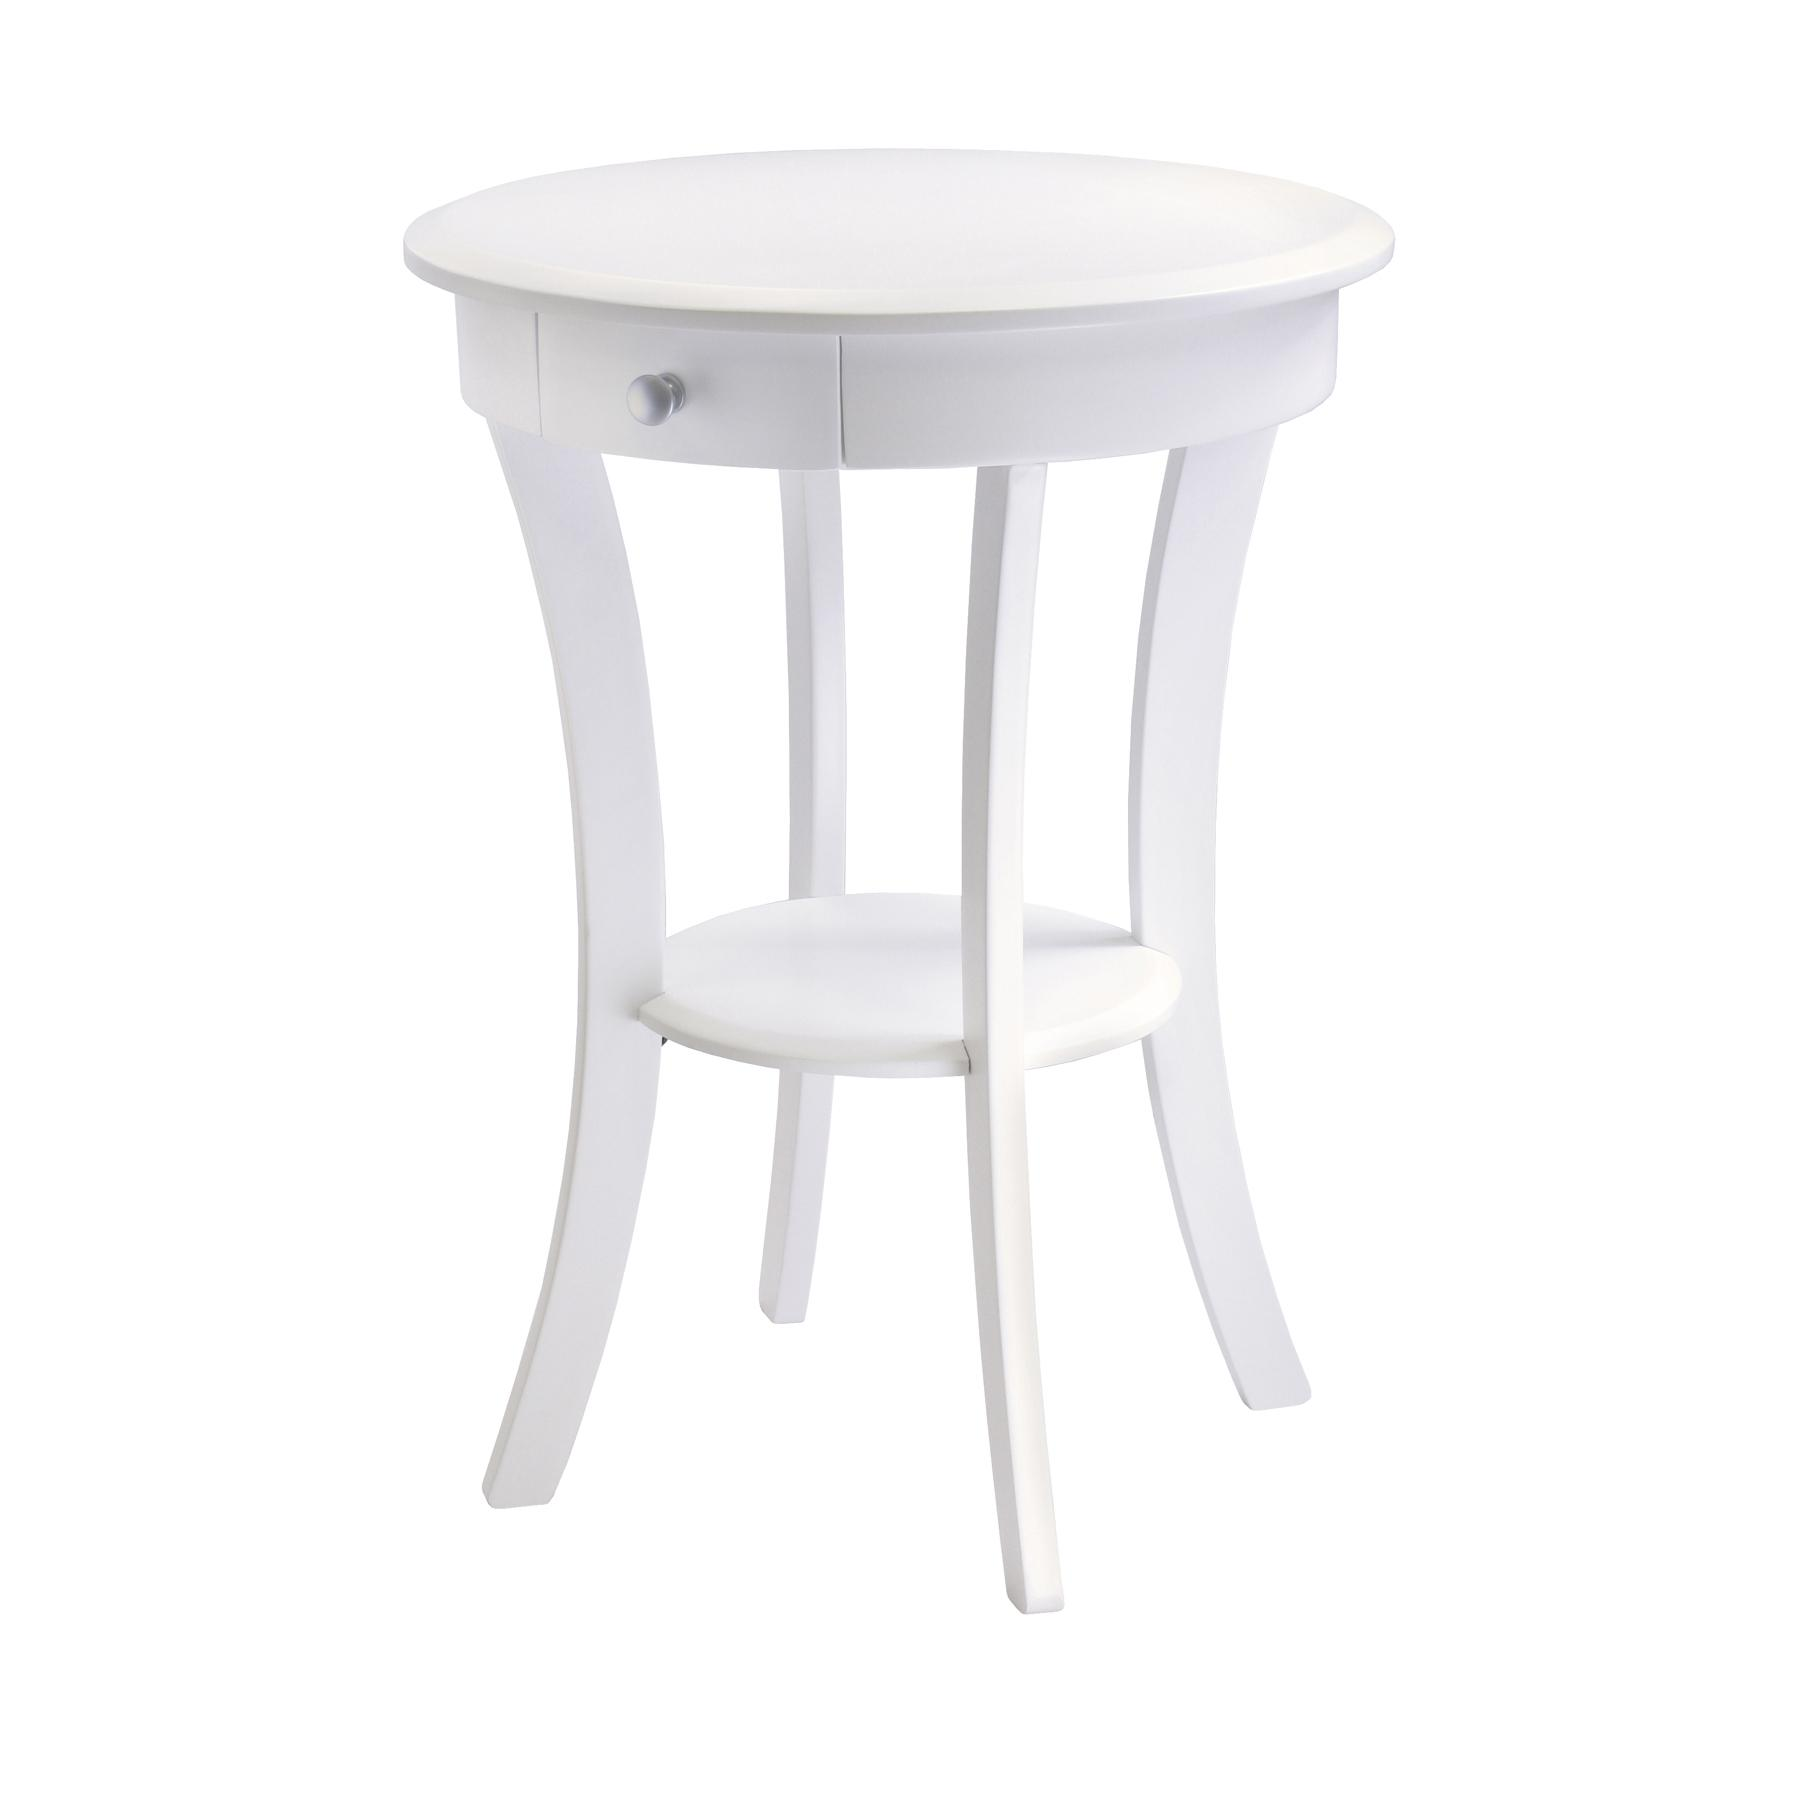 corner tables marble round whitewashed accent distressed outdoor table pedestal end furniture room whitewash living small eryn antique top off metal white full size and glass